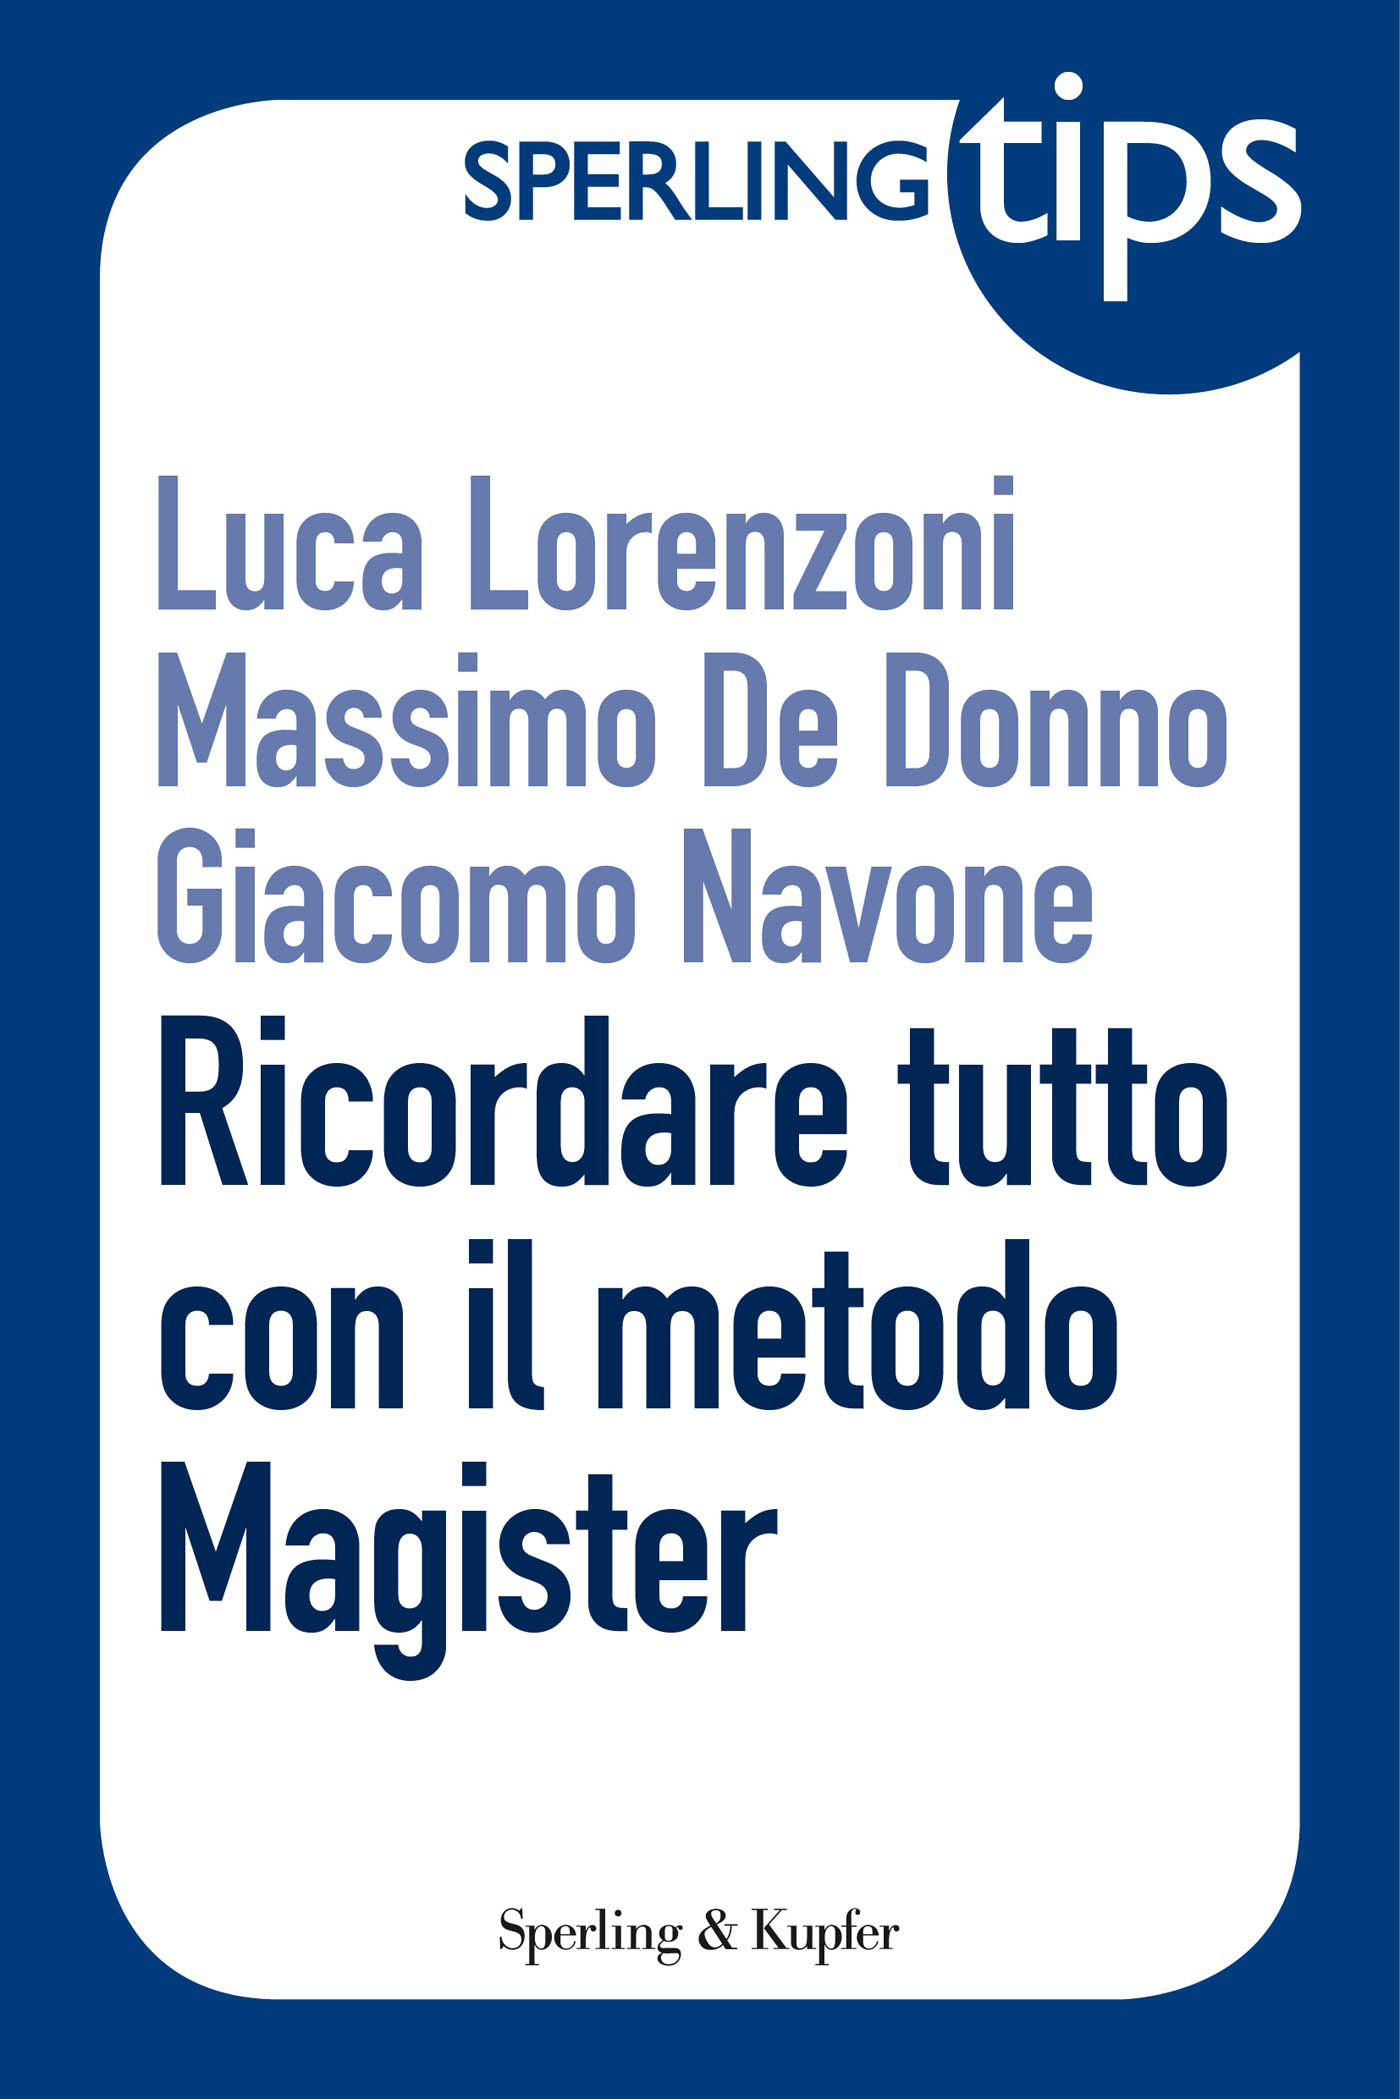 Ricordare tutto con il metodo Magister - Sperling Tips